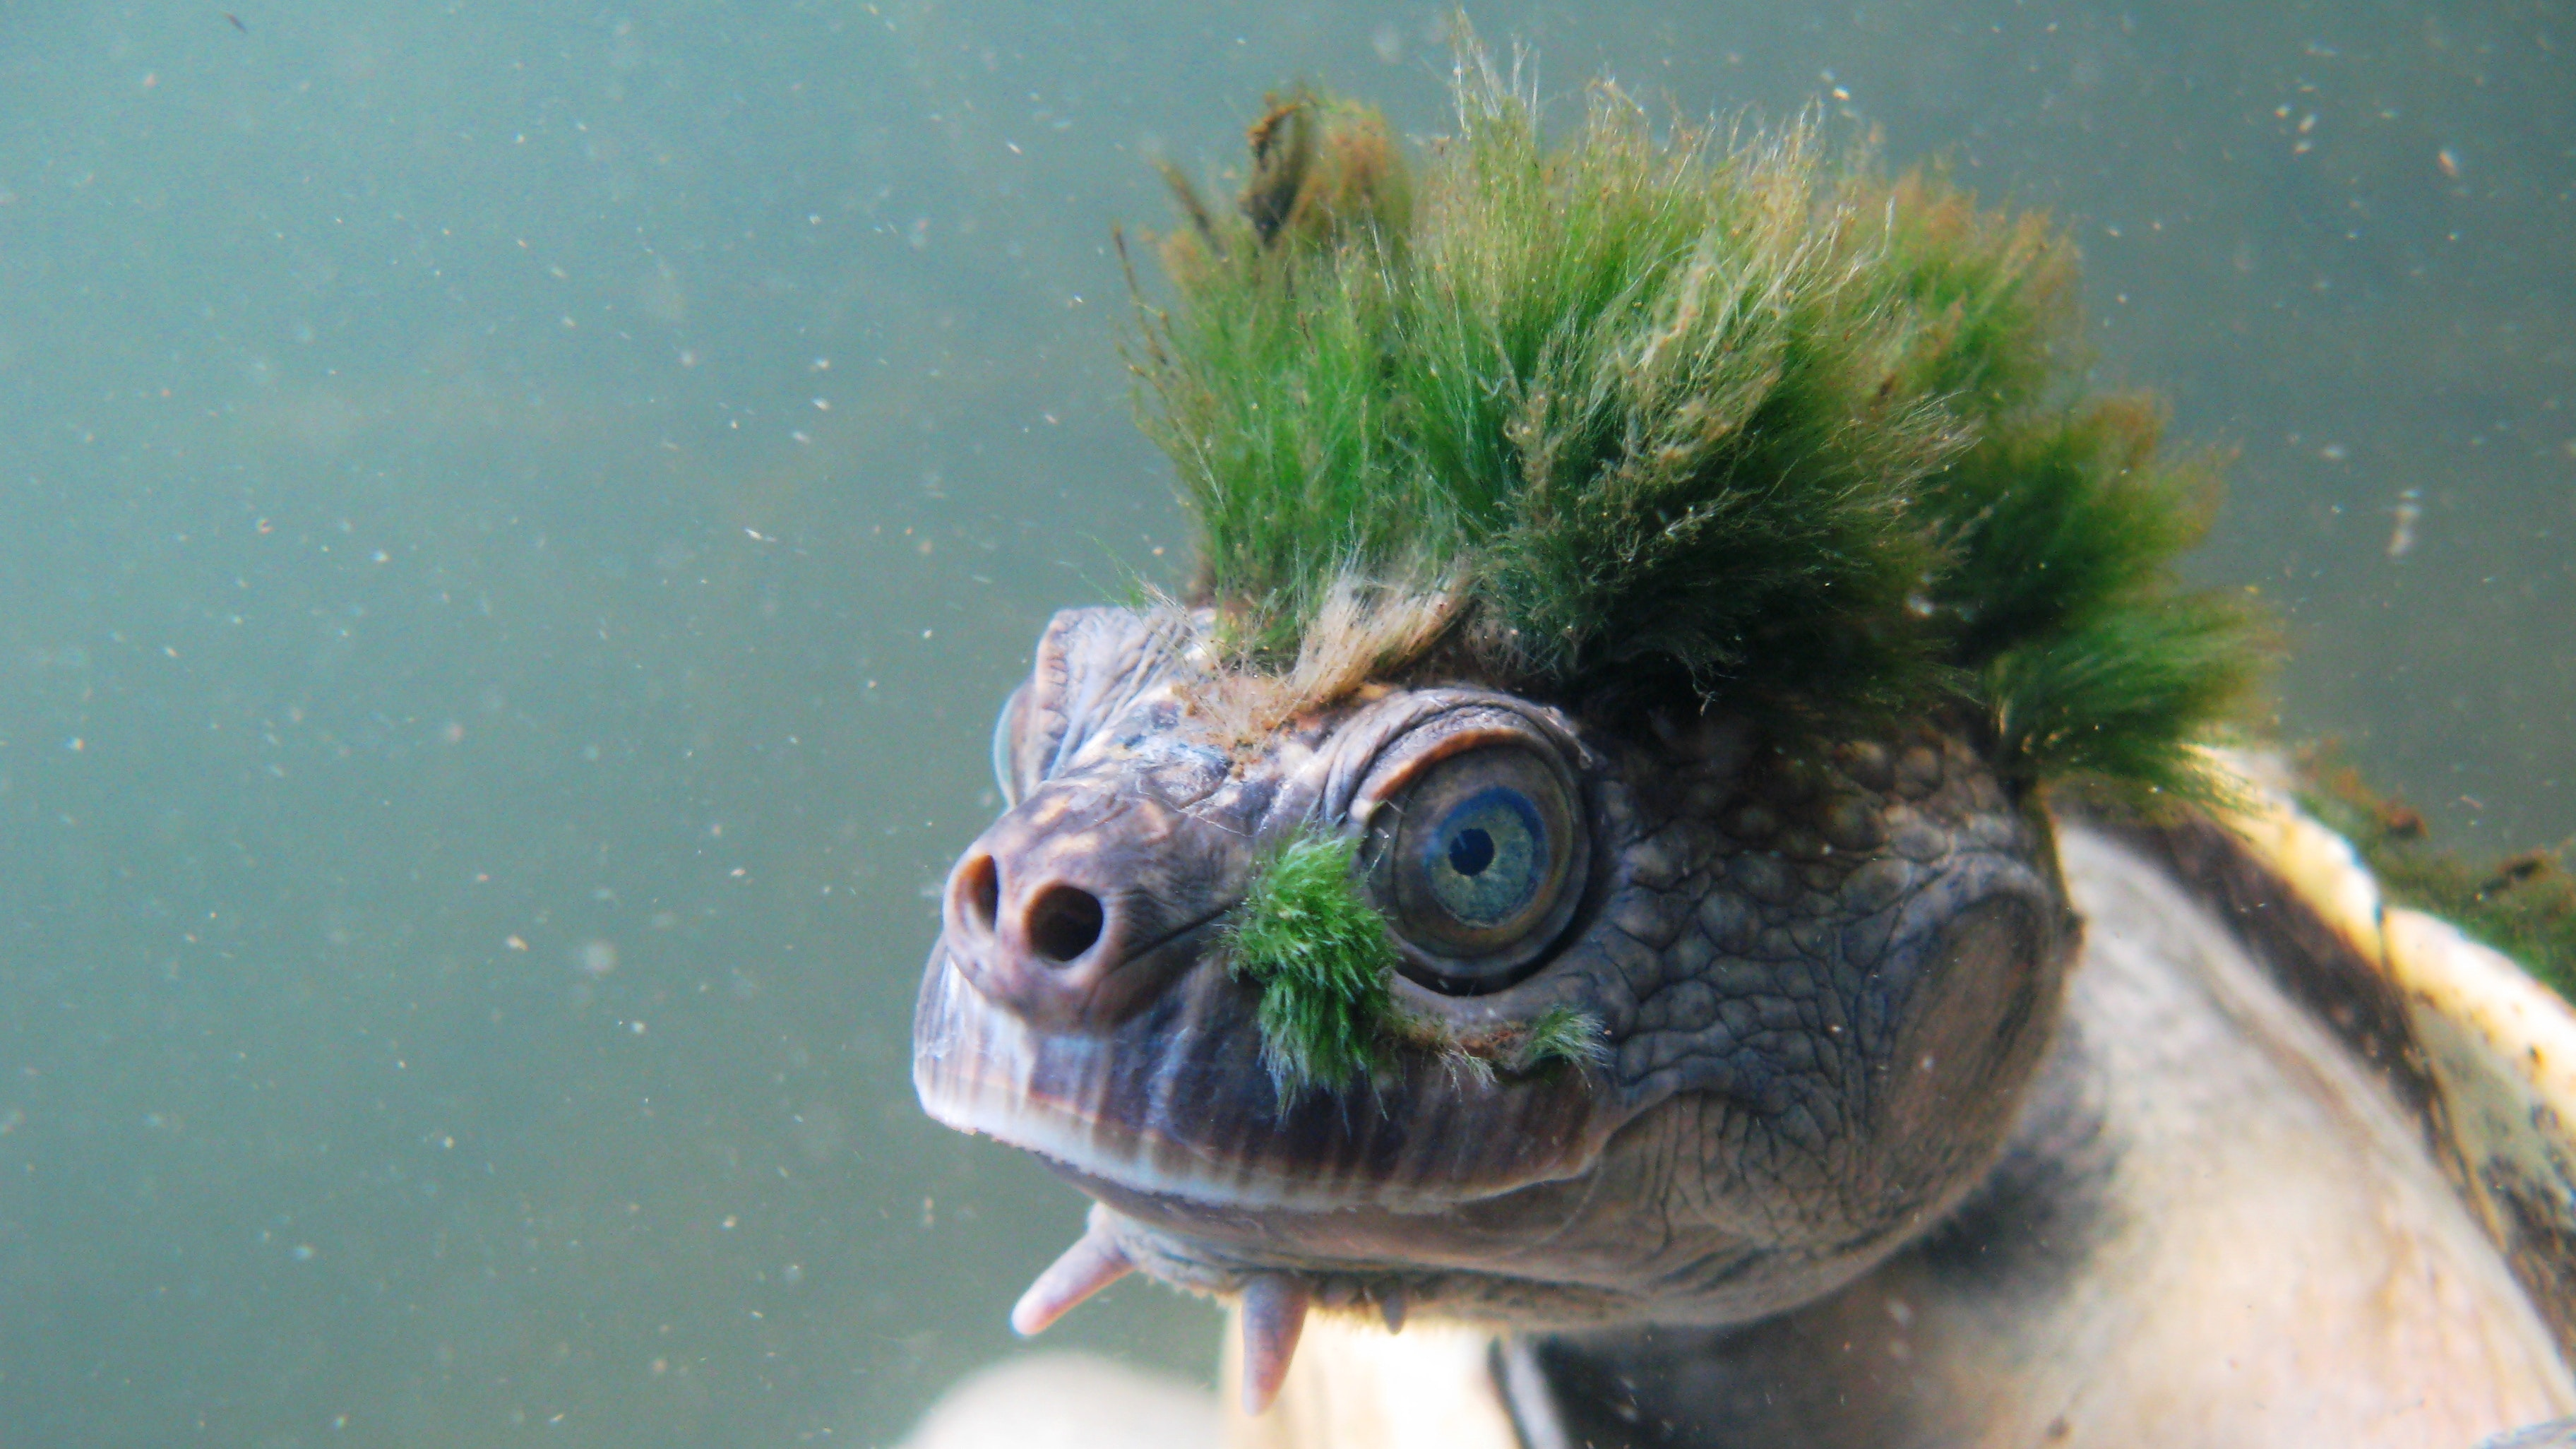 New Endangered Species List Includes 'Punk Rock' Turtle, Other 'Weird Reptiles'